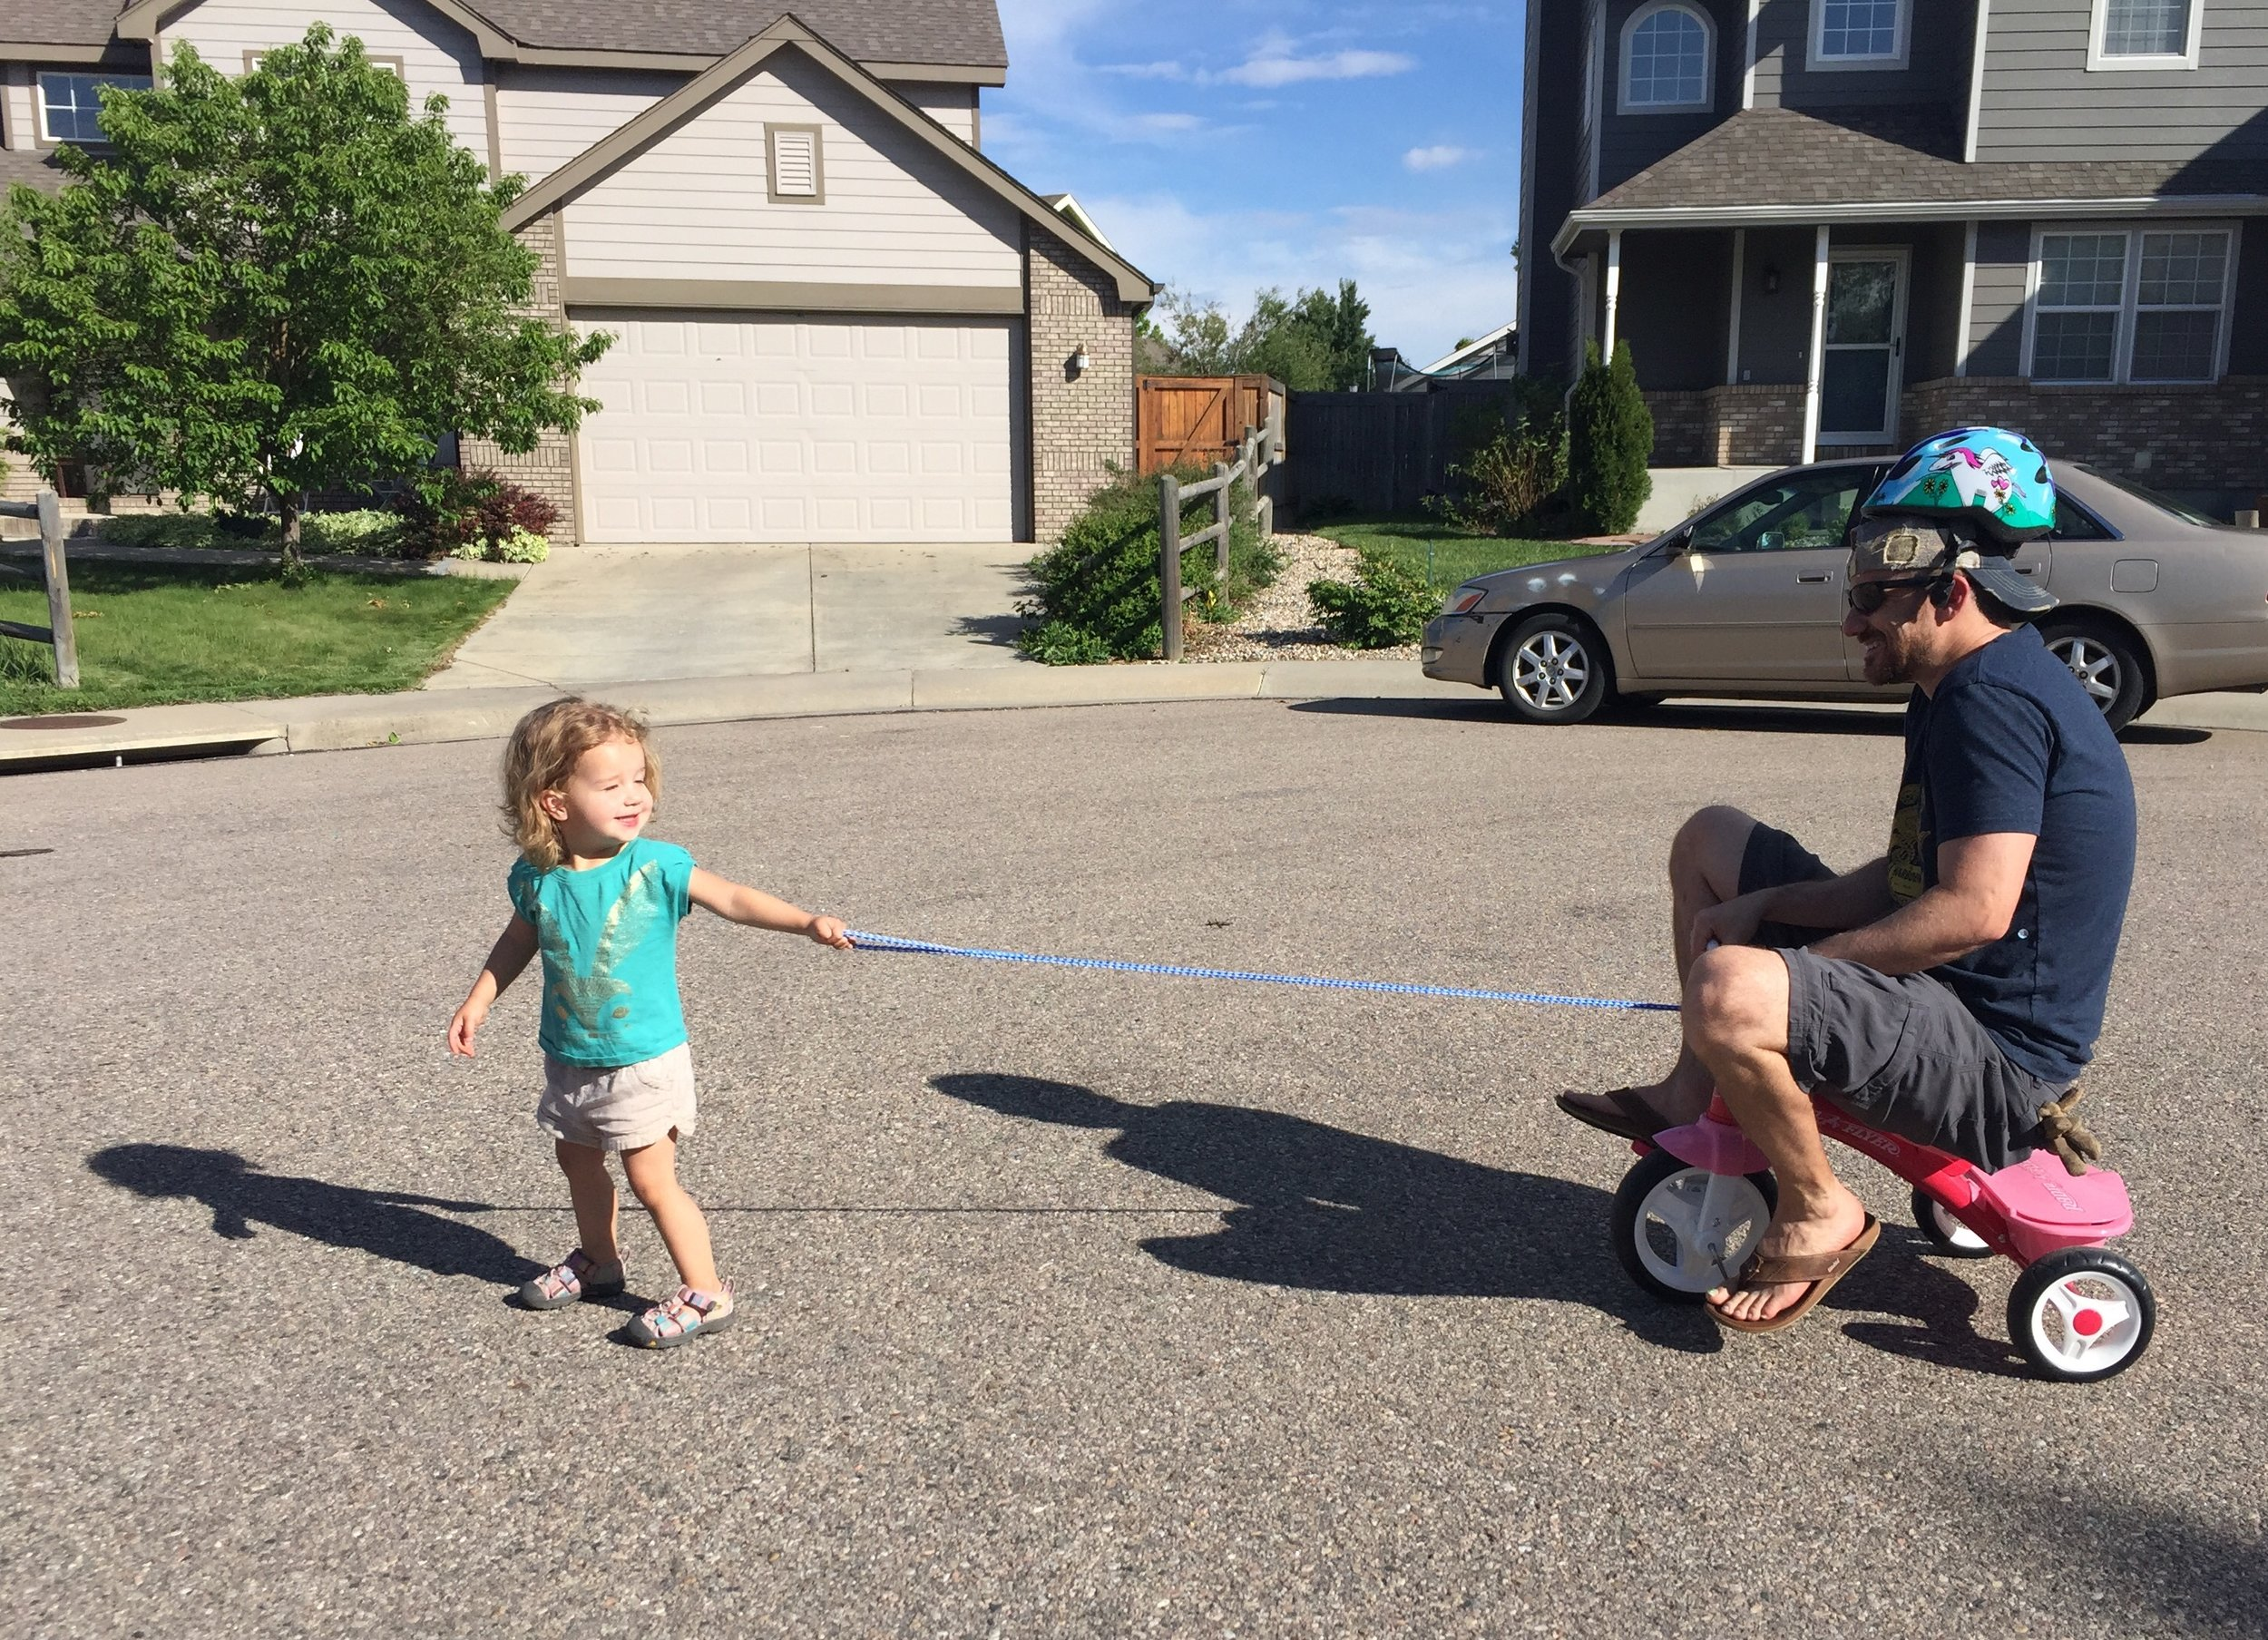 Rylee taking her dad for a bike ride